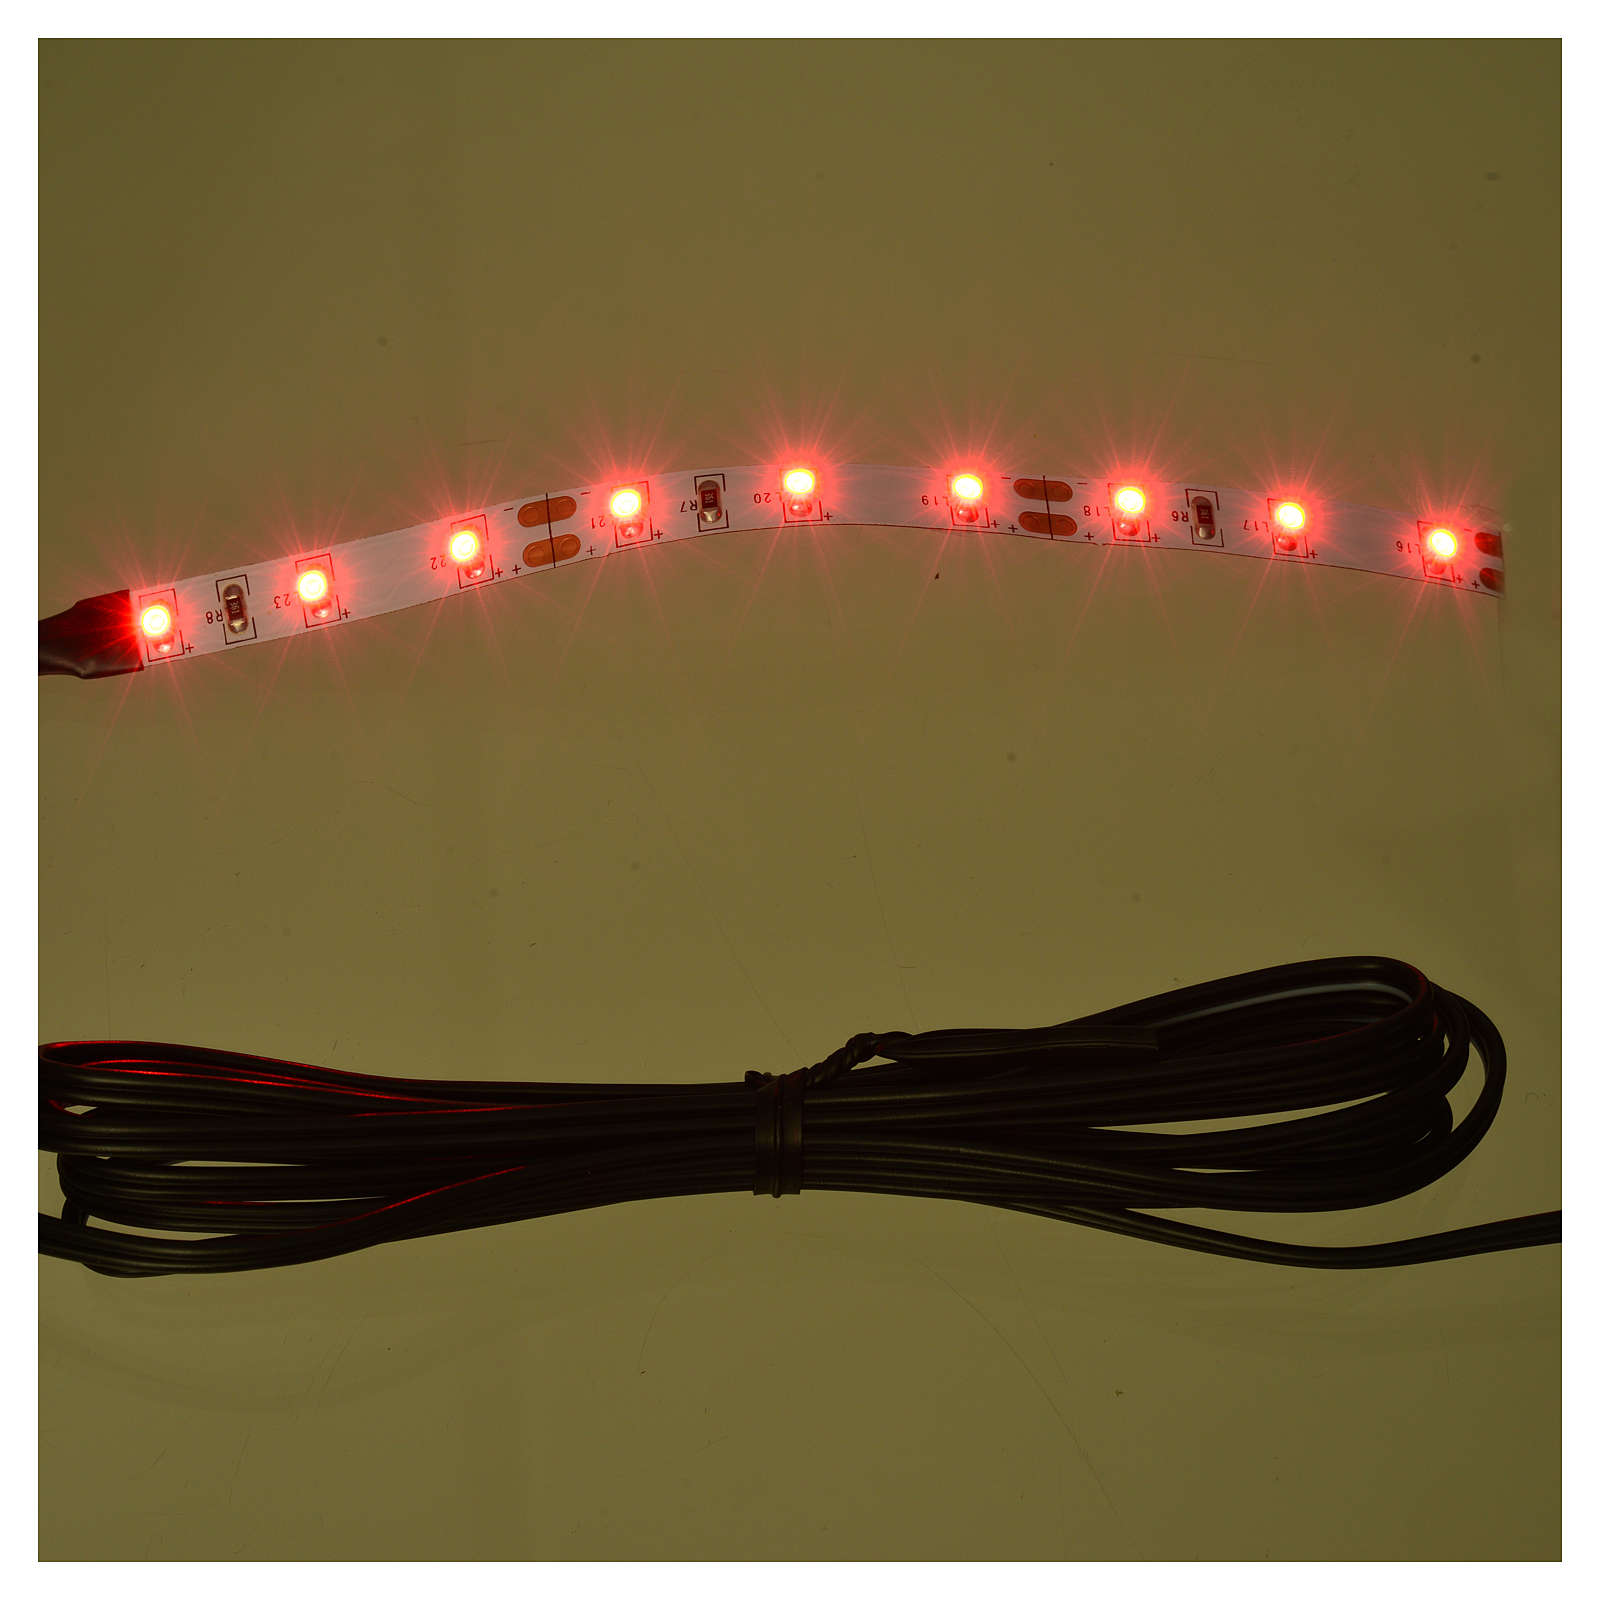 LED strip with 9 lights 0,8x12cm, red for Frisalight 4